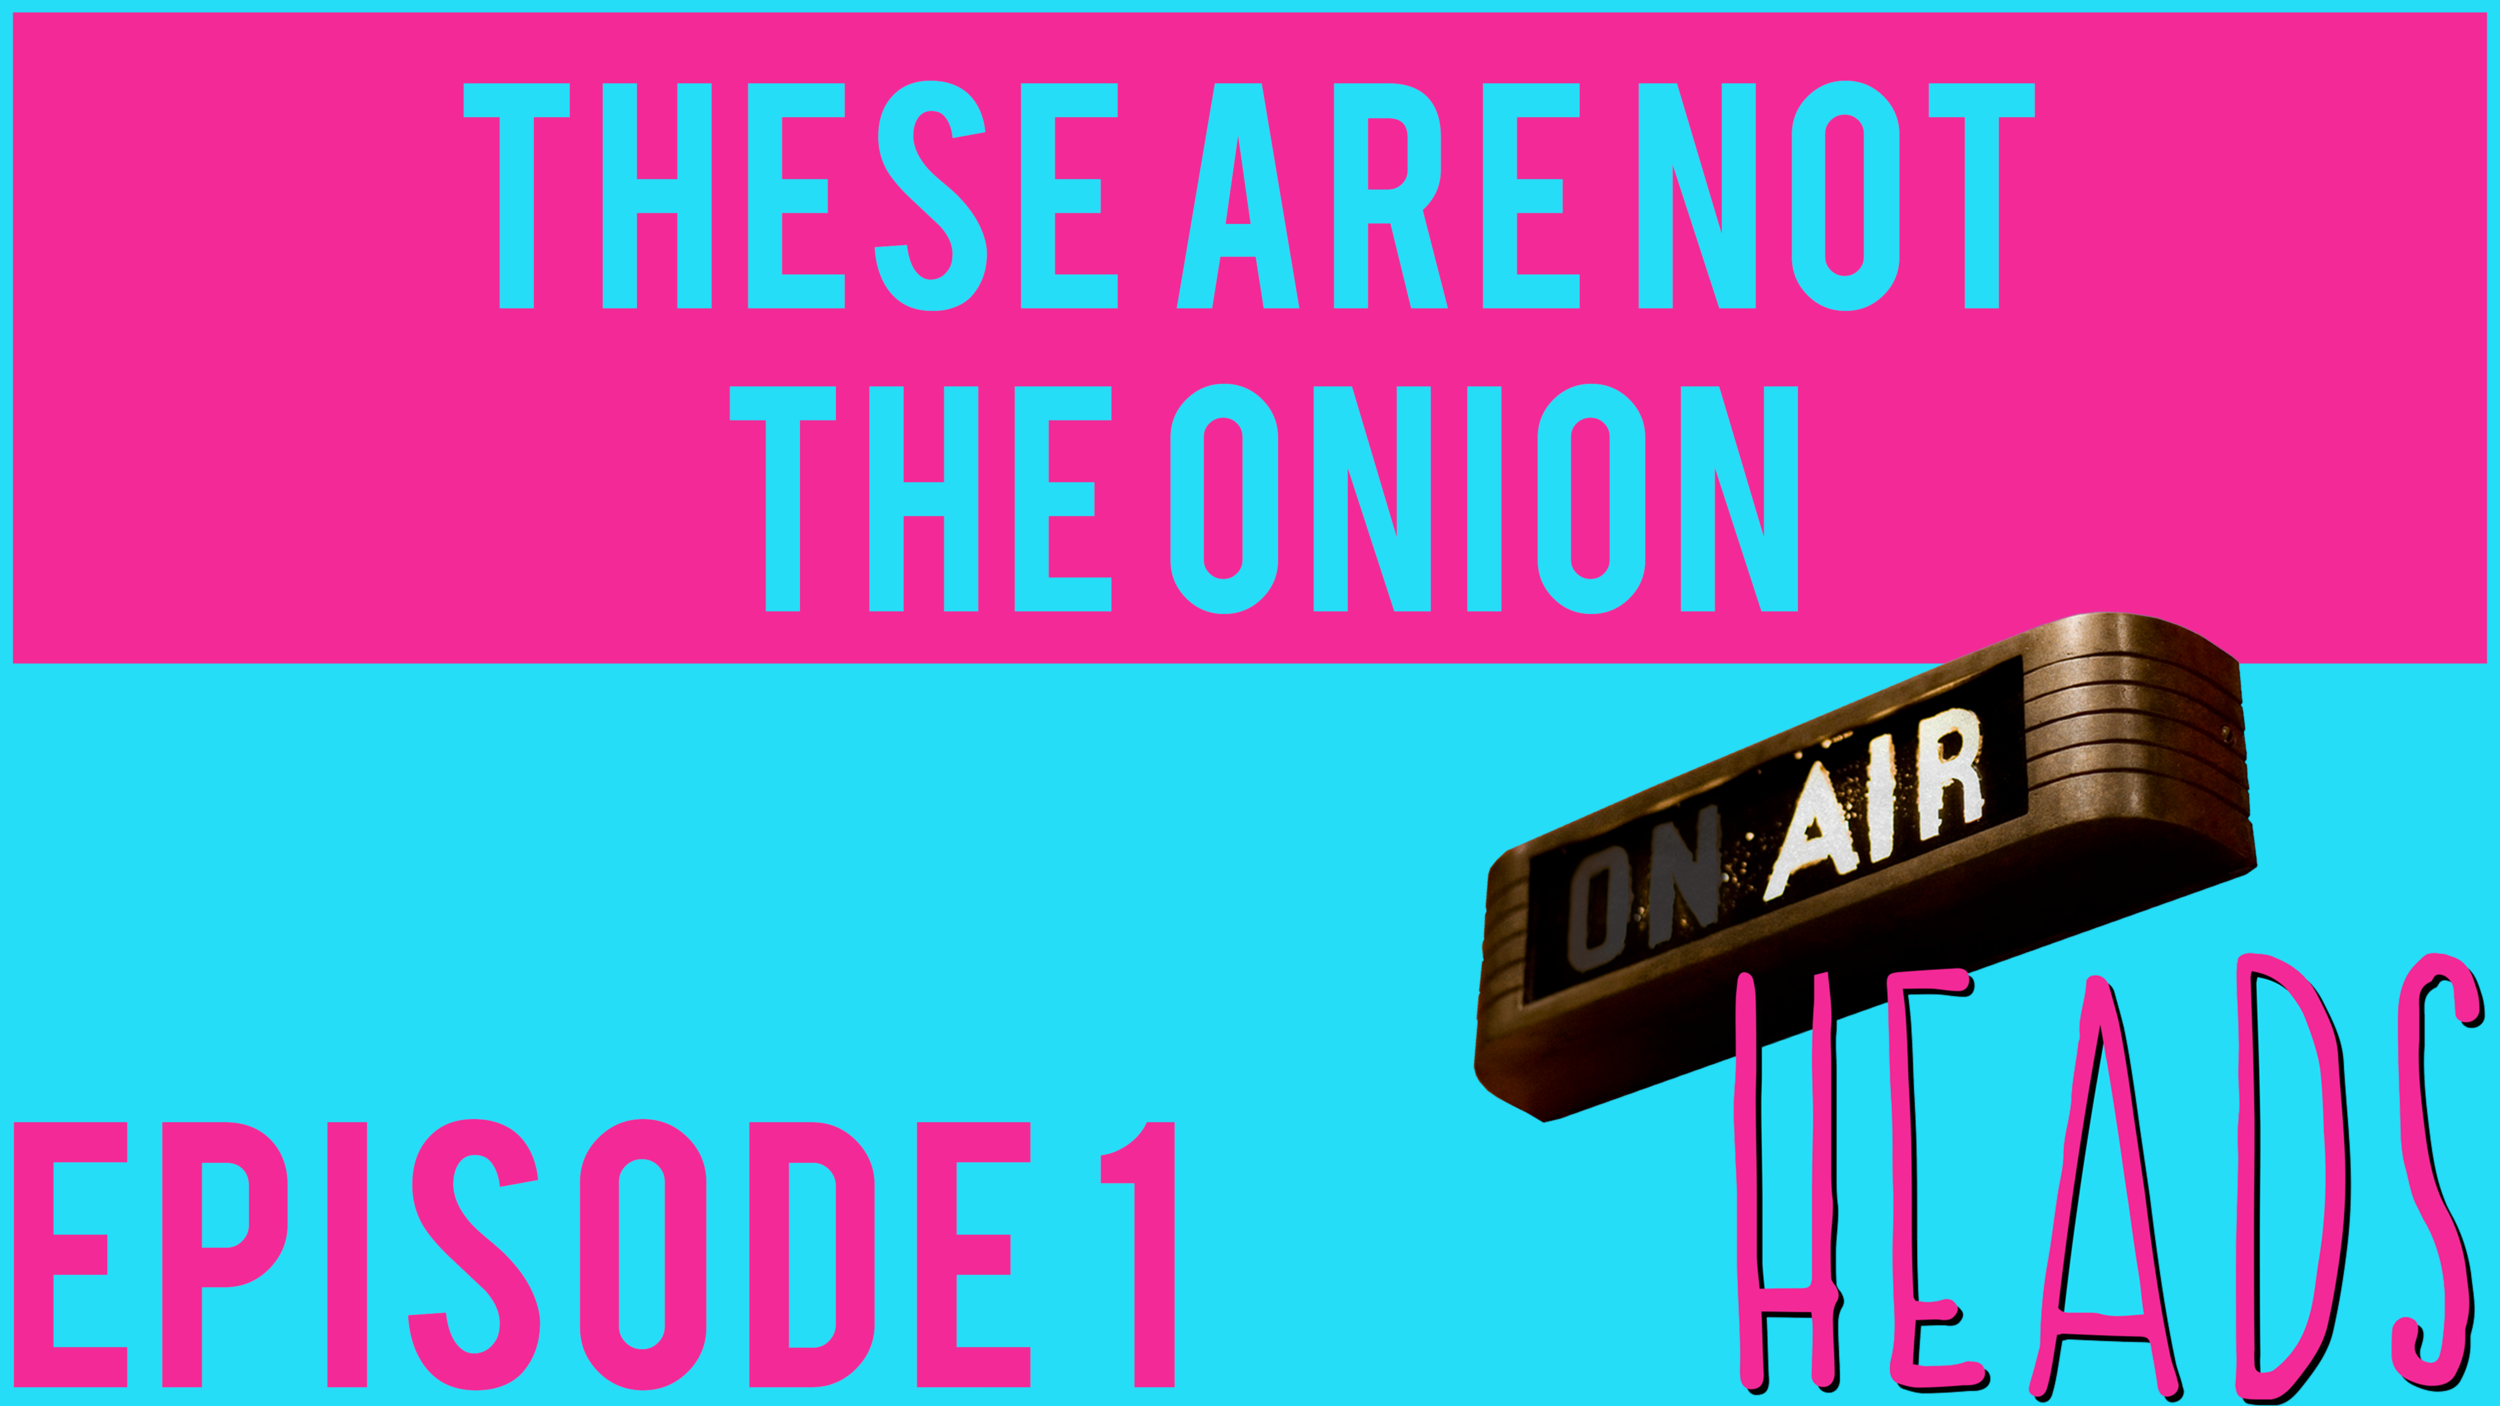 EPISODE 1 - First AirHeads episode: THESE ARE NOT THE ONION - EPISODE 1 is up for all $10 Patrons!